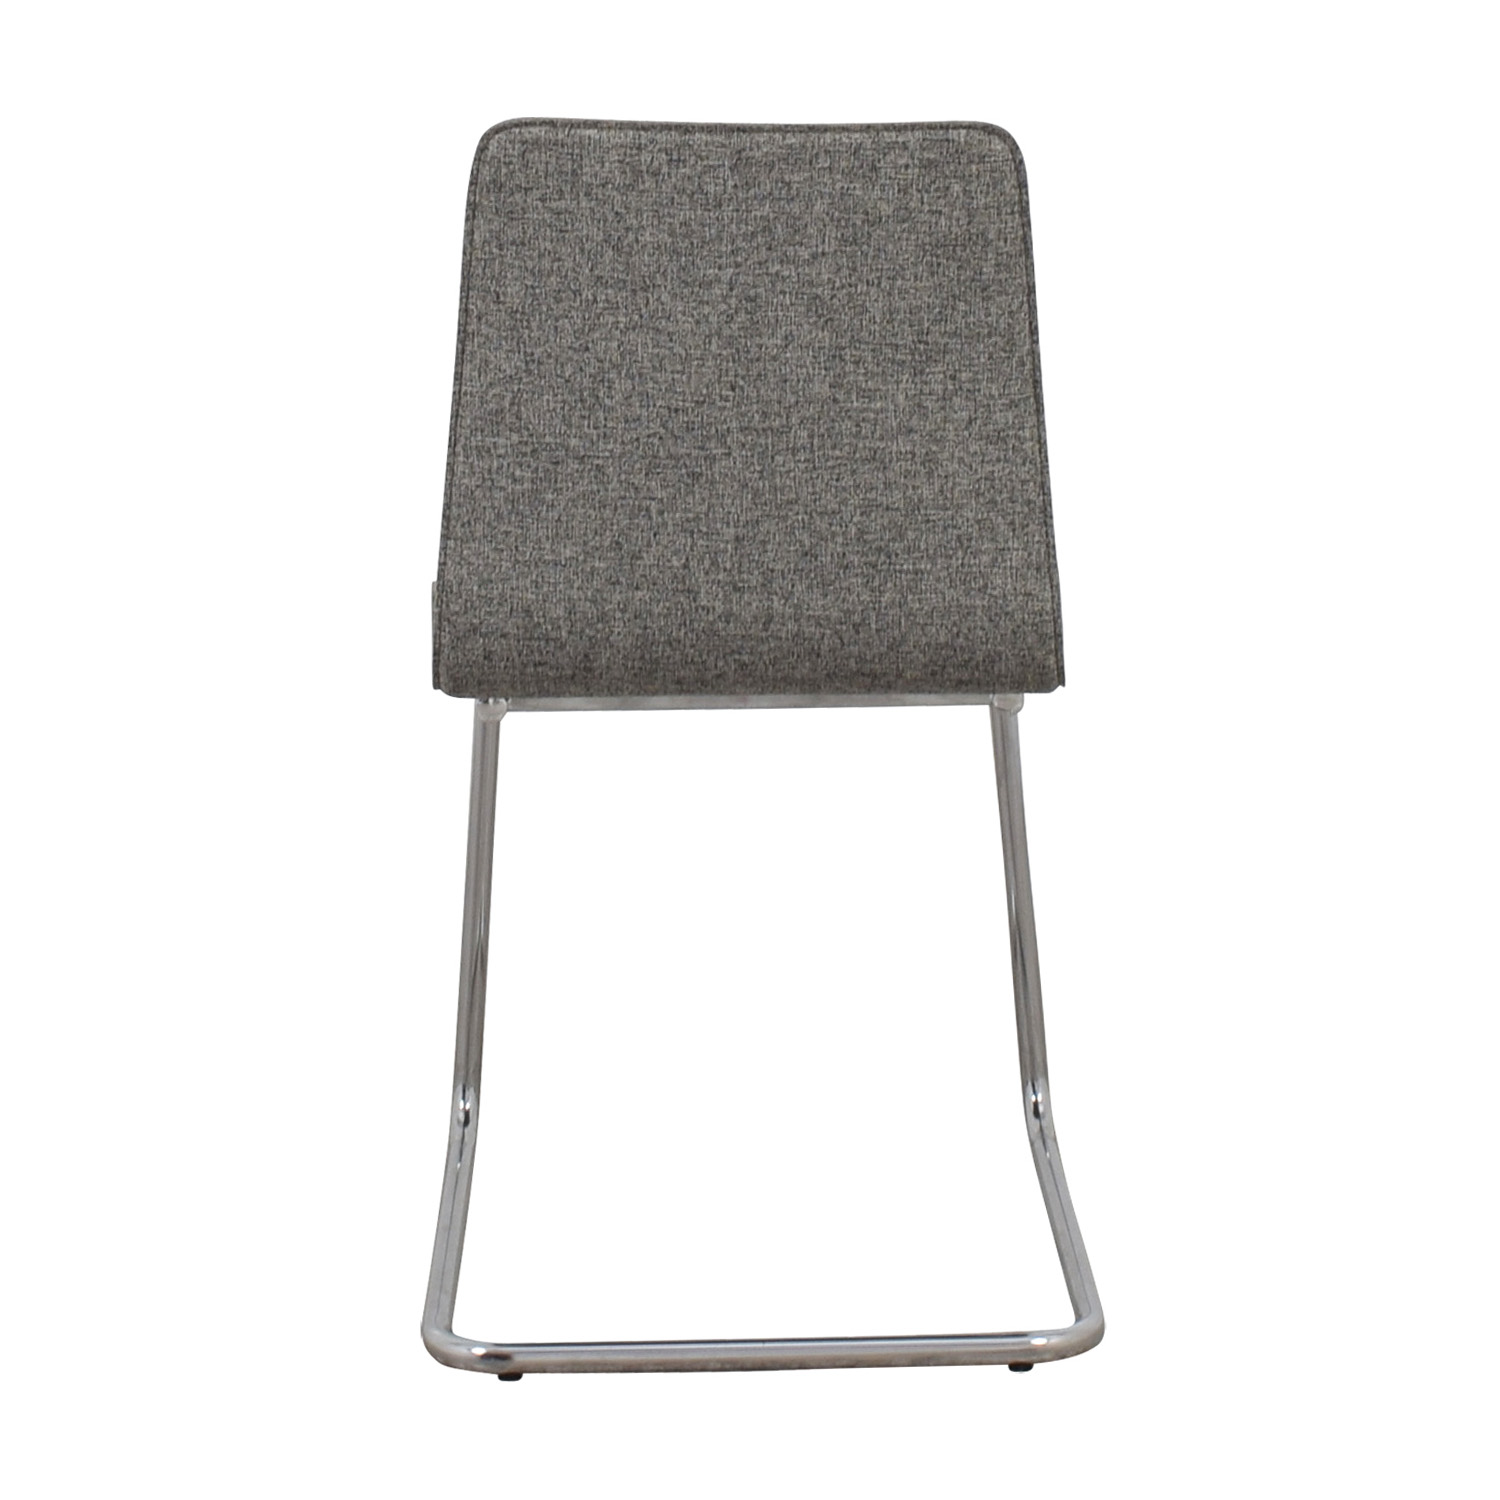 Cool 73 Off Cb2 Cn2 Grey Pony Tweed Chair Chairs Lamtechconsult Wood Chair Design Ideas Lamtechconsultcom